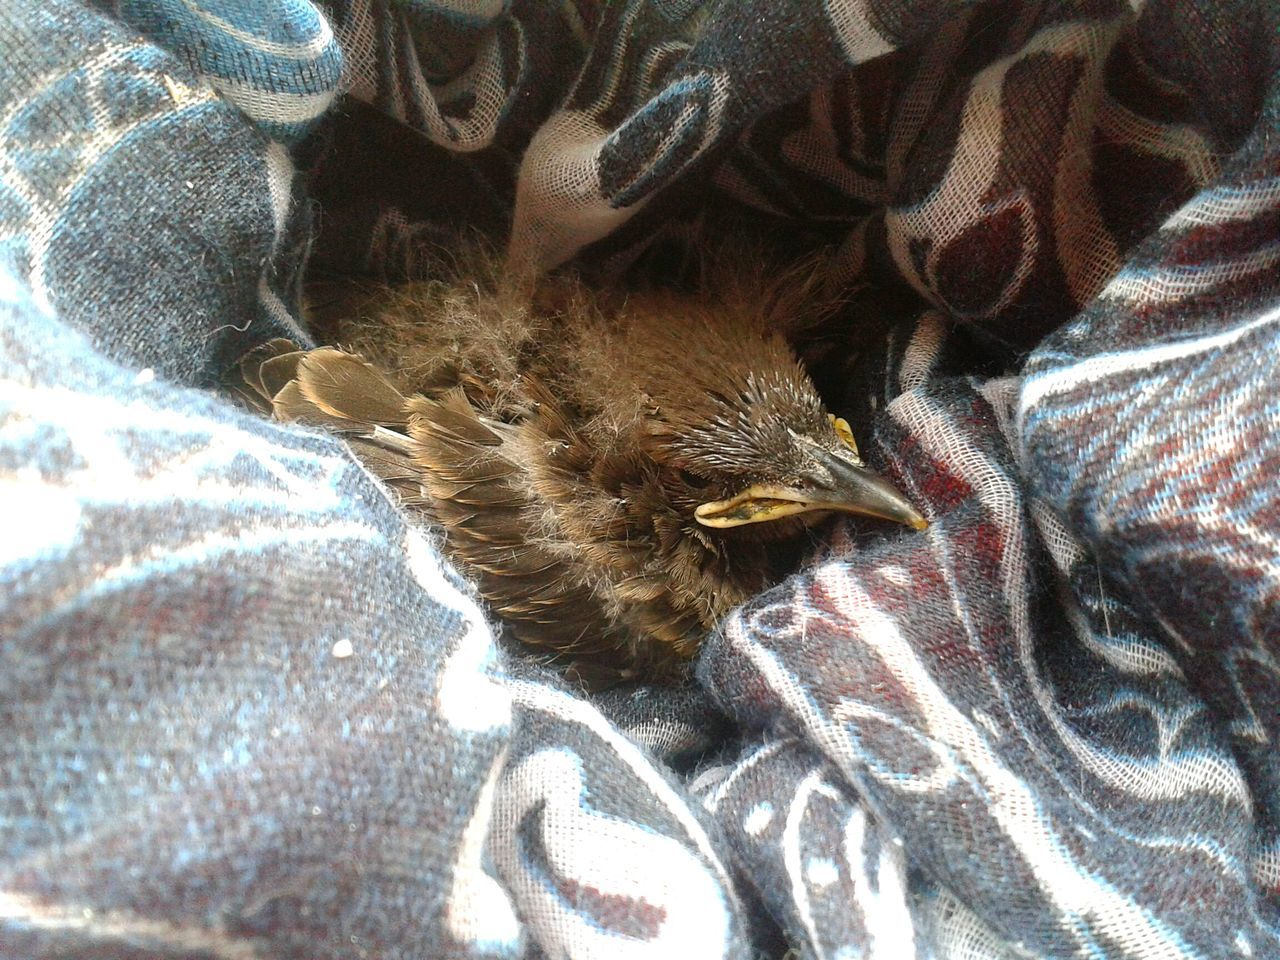 High Angle View Of Bird Relaxing Amidst Fabrics